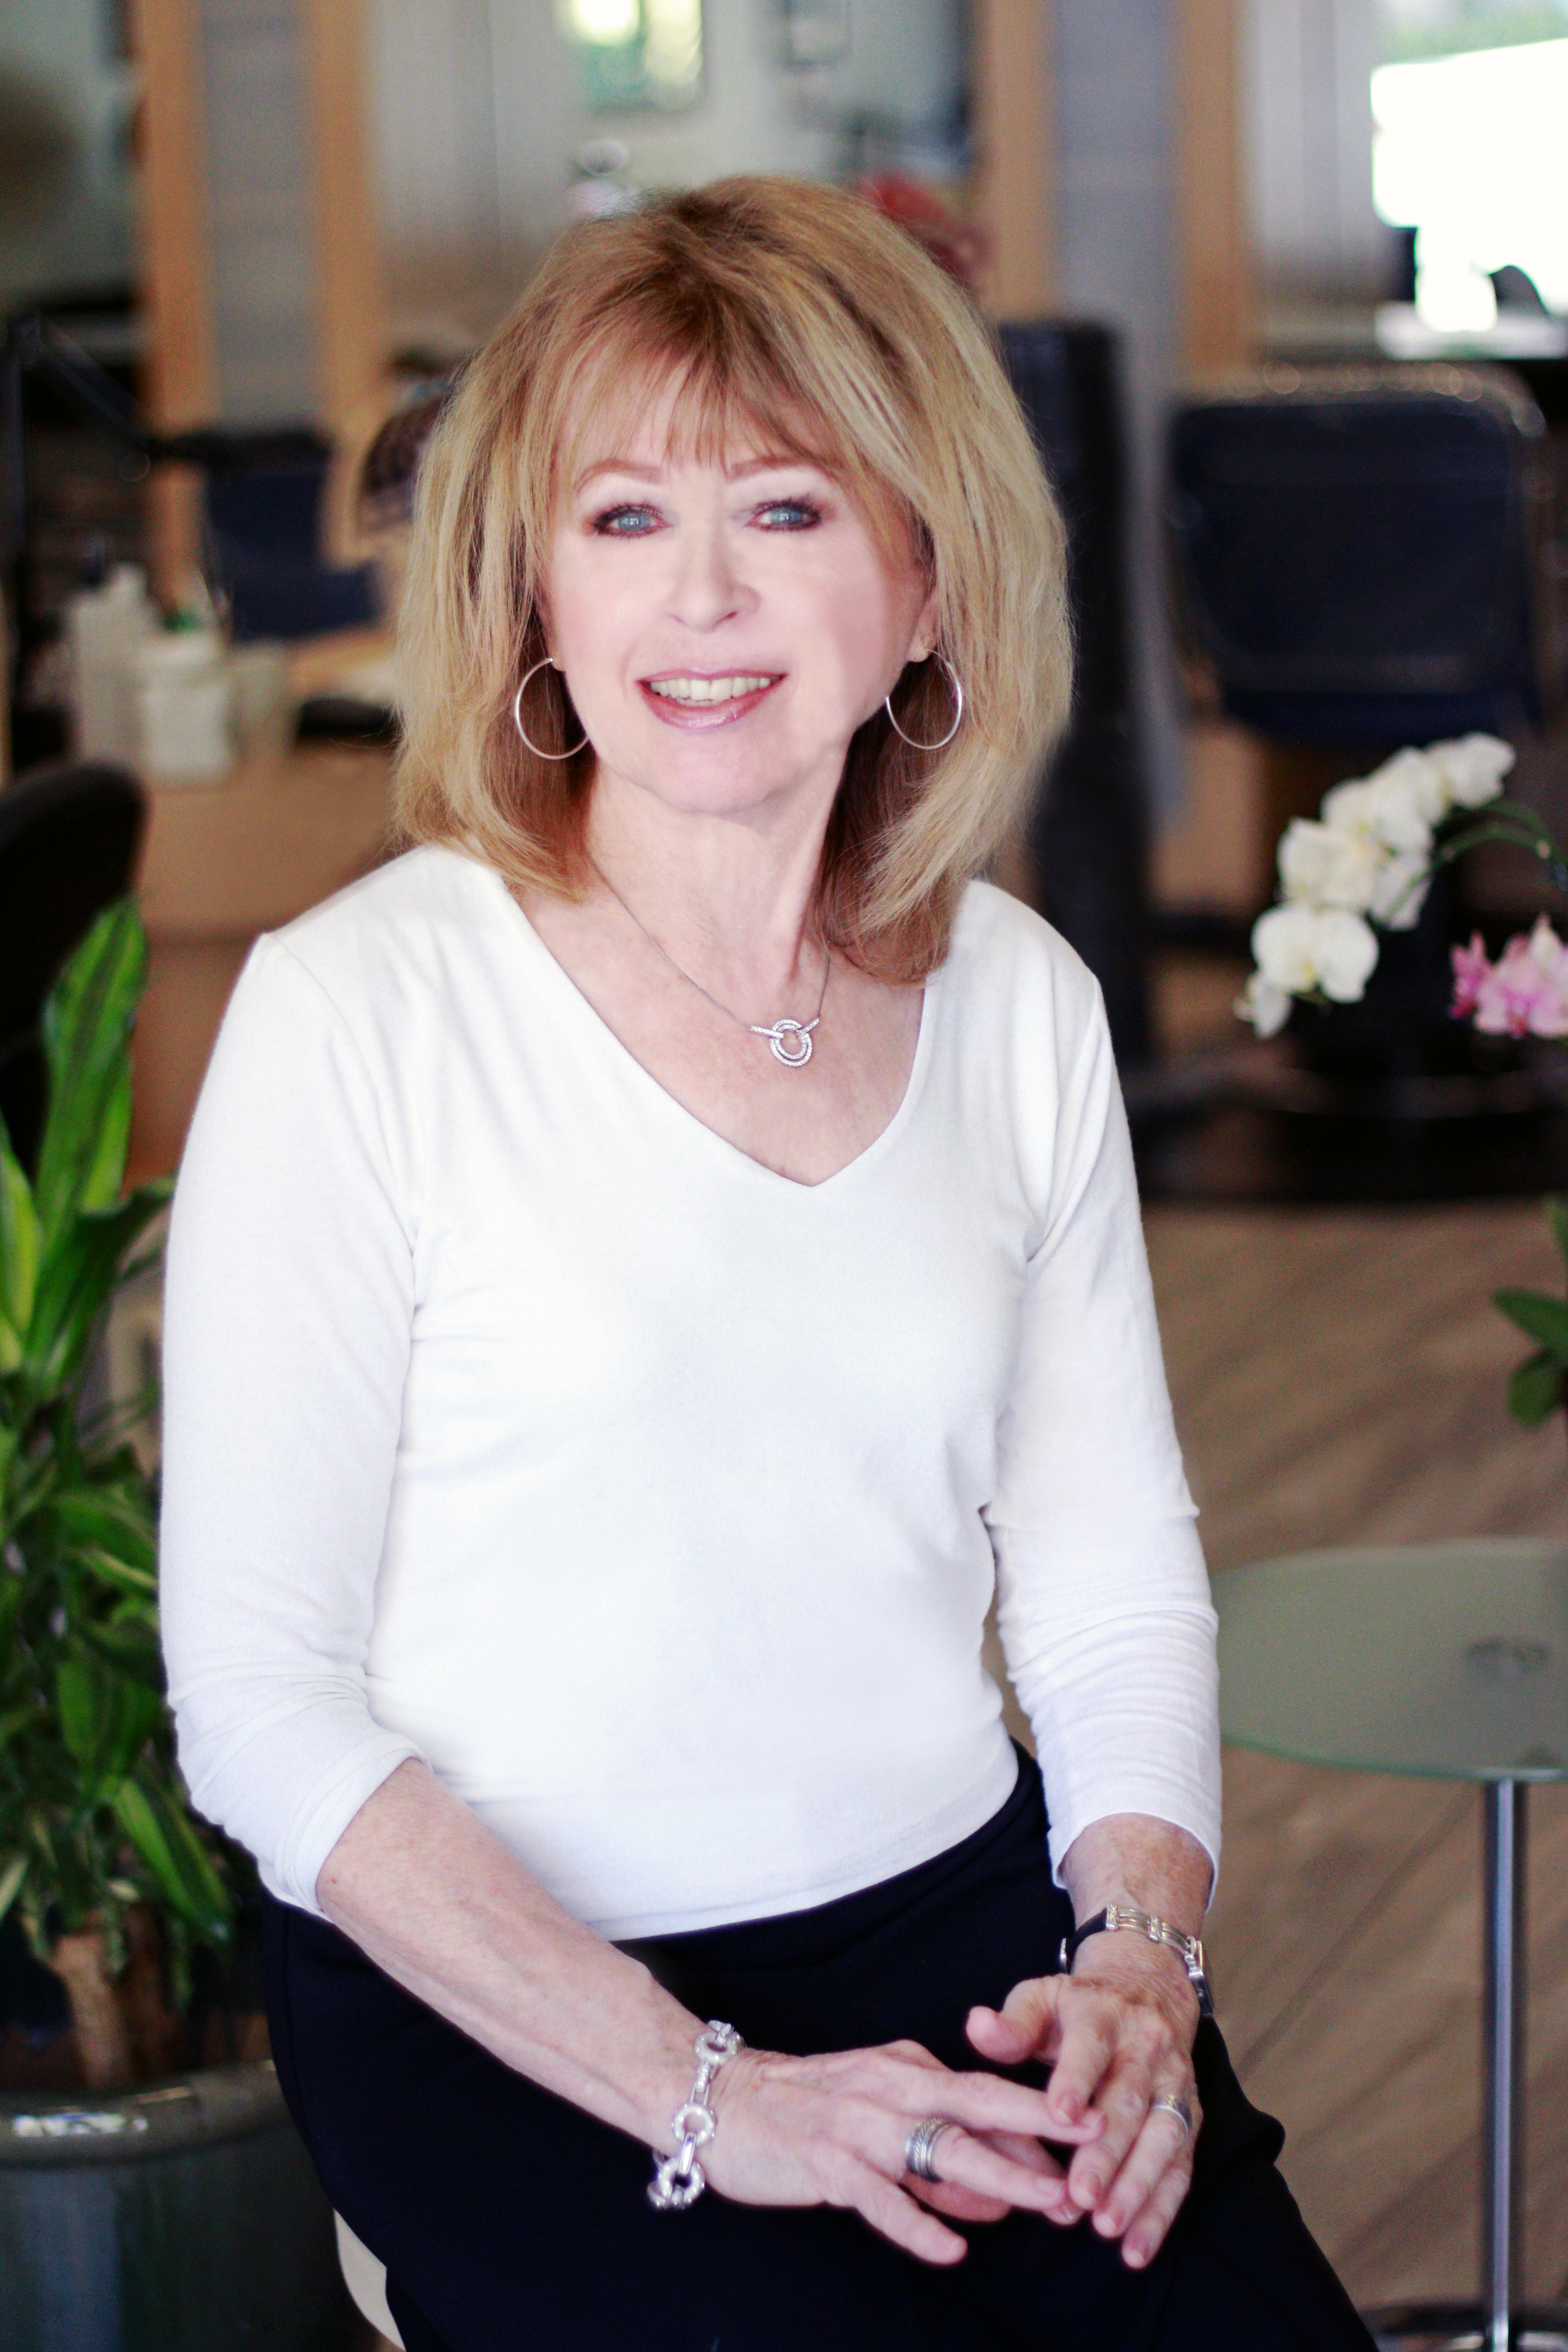 Esther Bolkin, Founder of Glad Lash and Pioneer in Single Strand Lashes Esther Bolkin